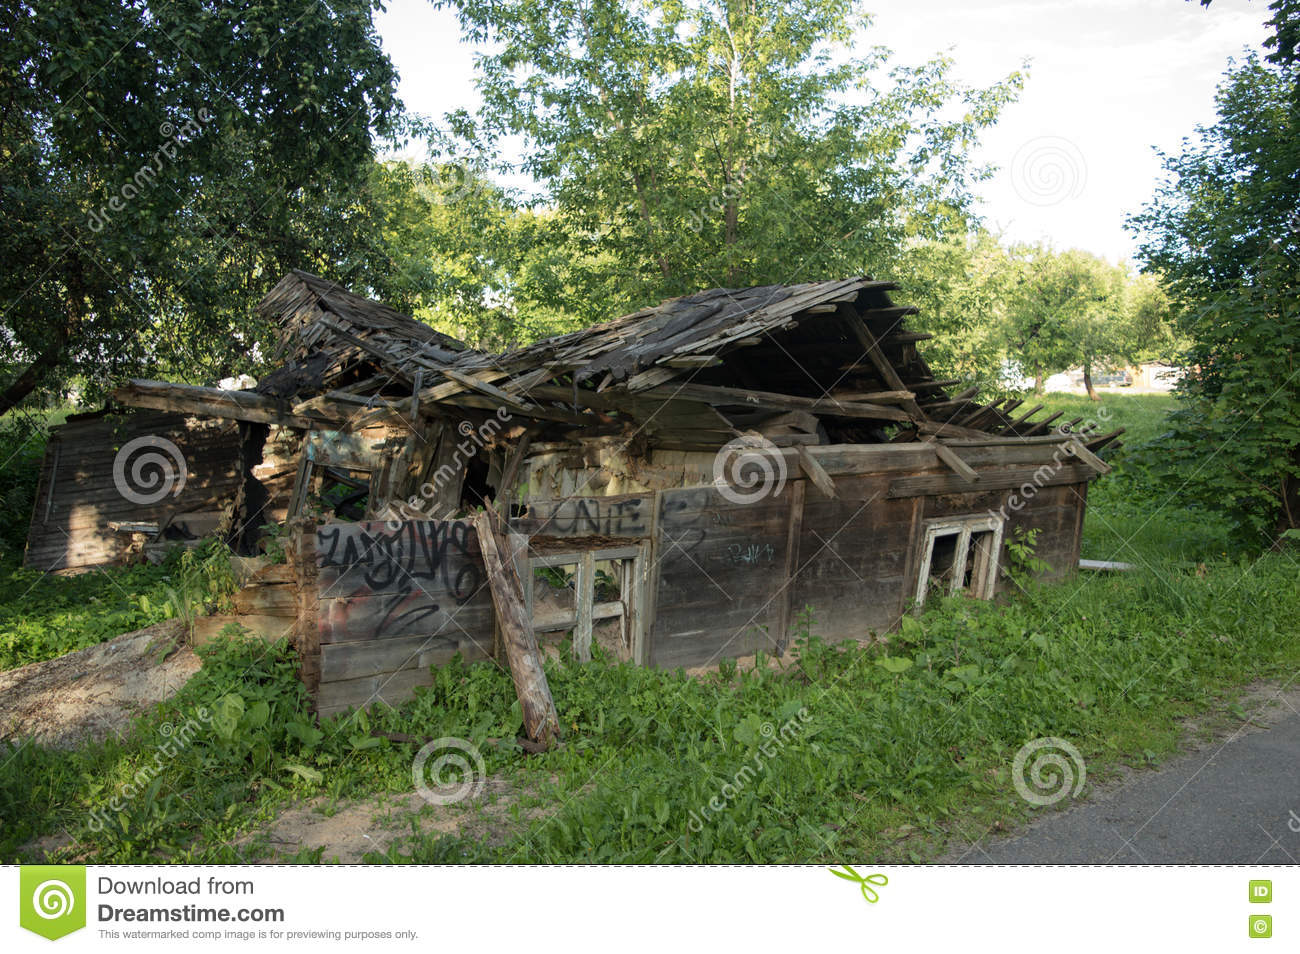 The ruins of the old wooden house